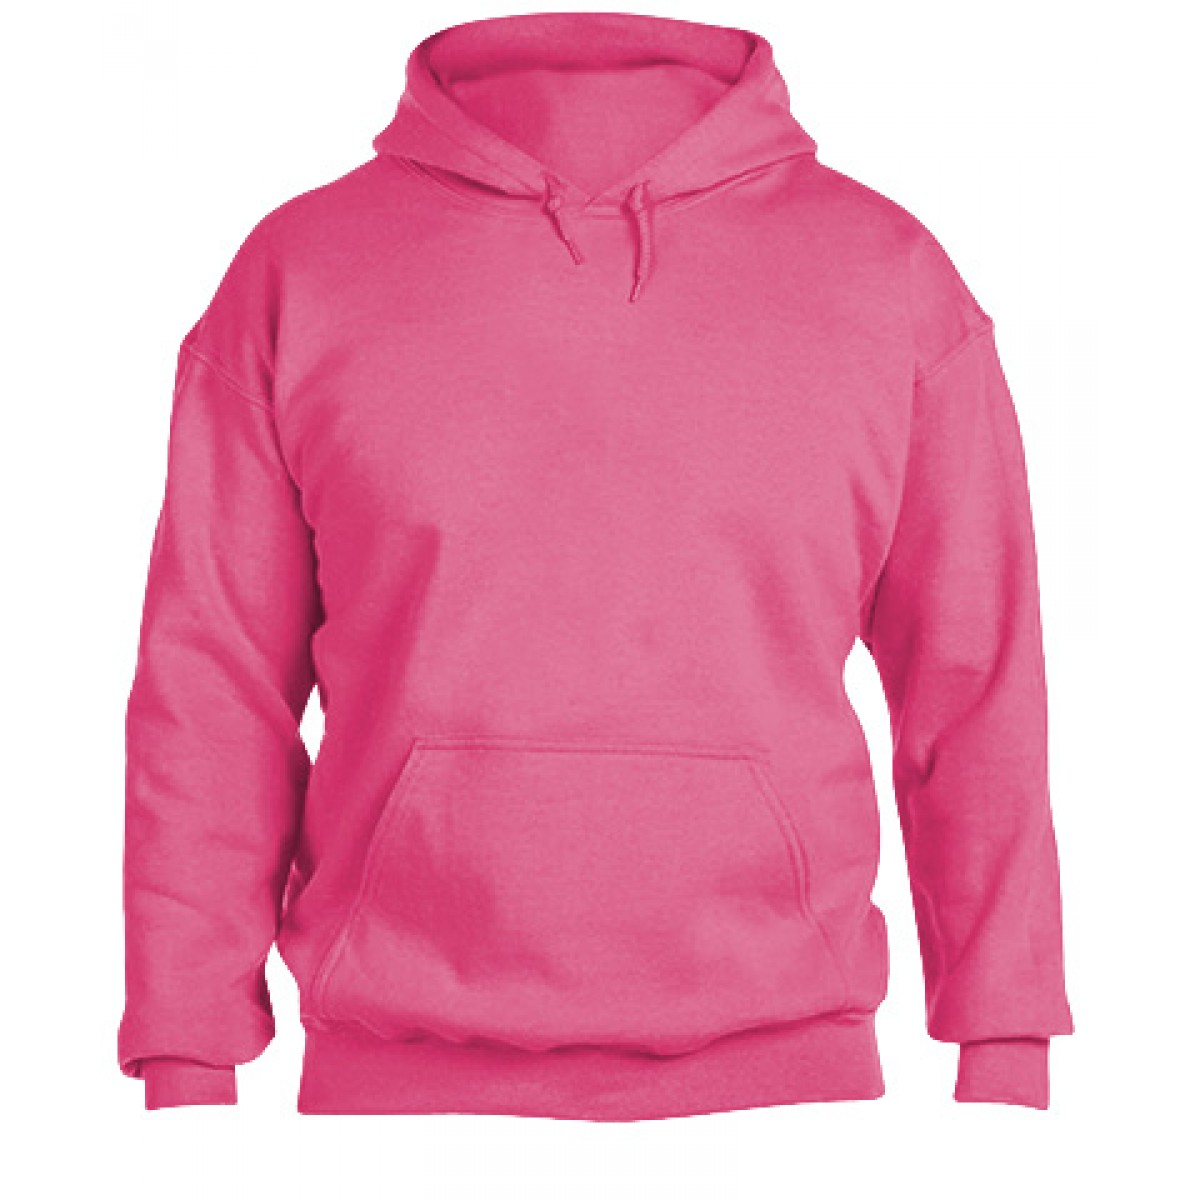 Hooded Sweatshirt 50/50 Heavy Blend -Safety Pink-L